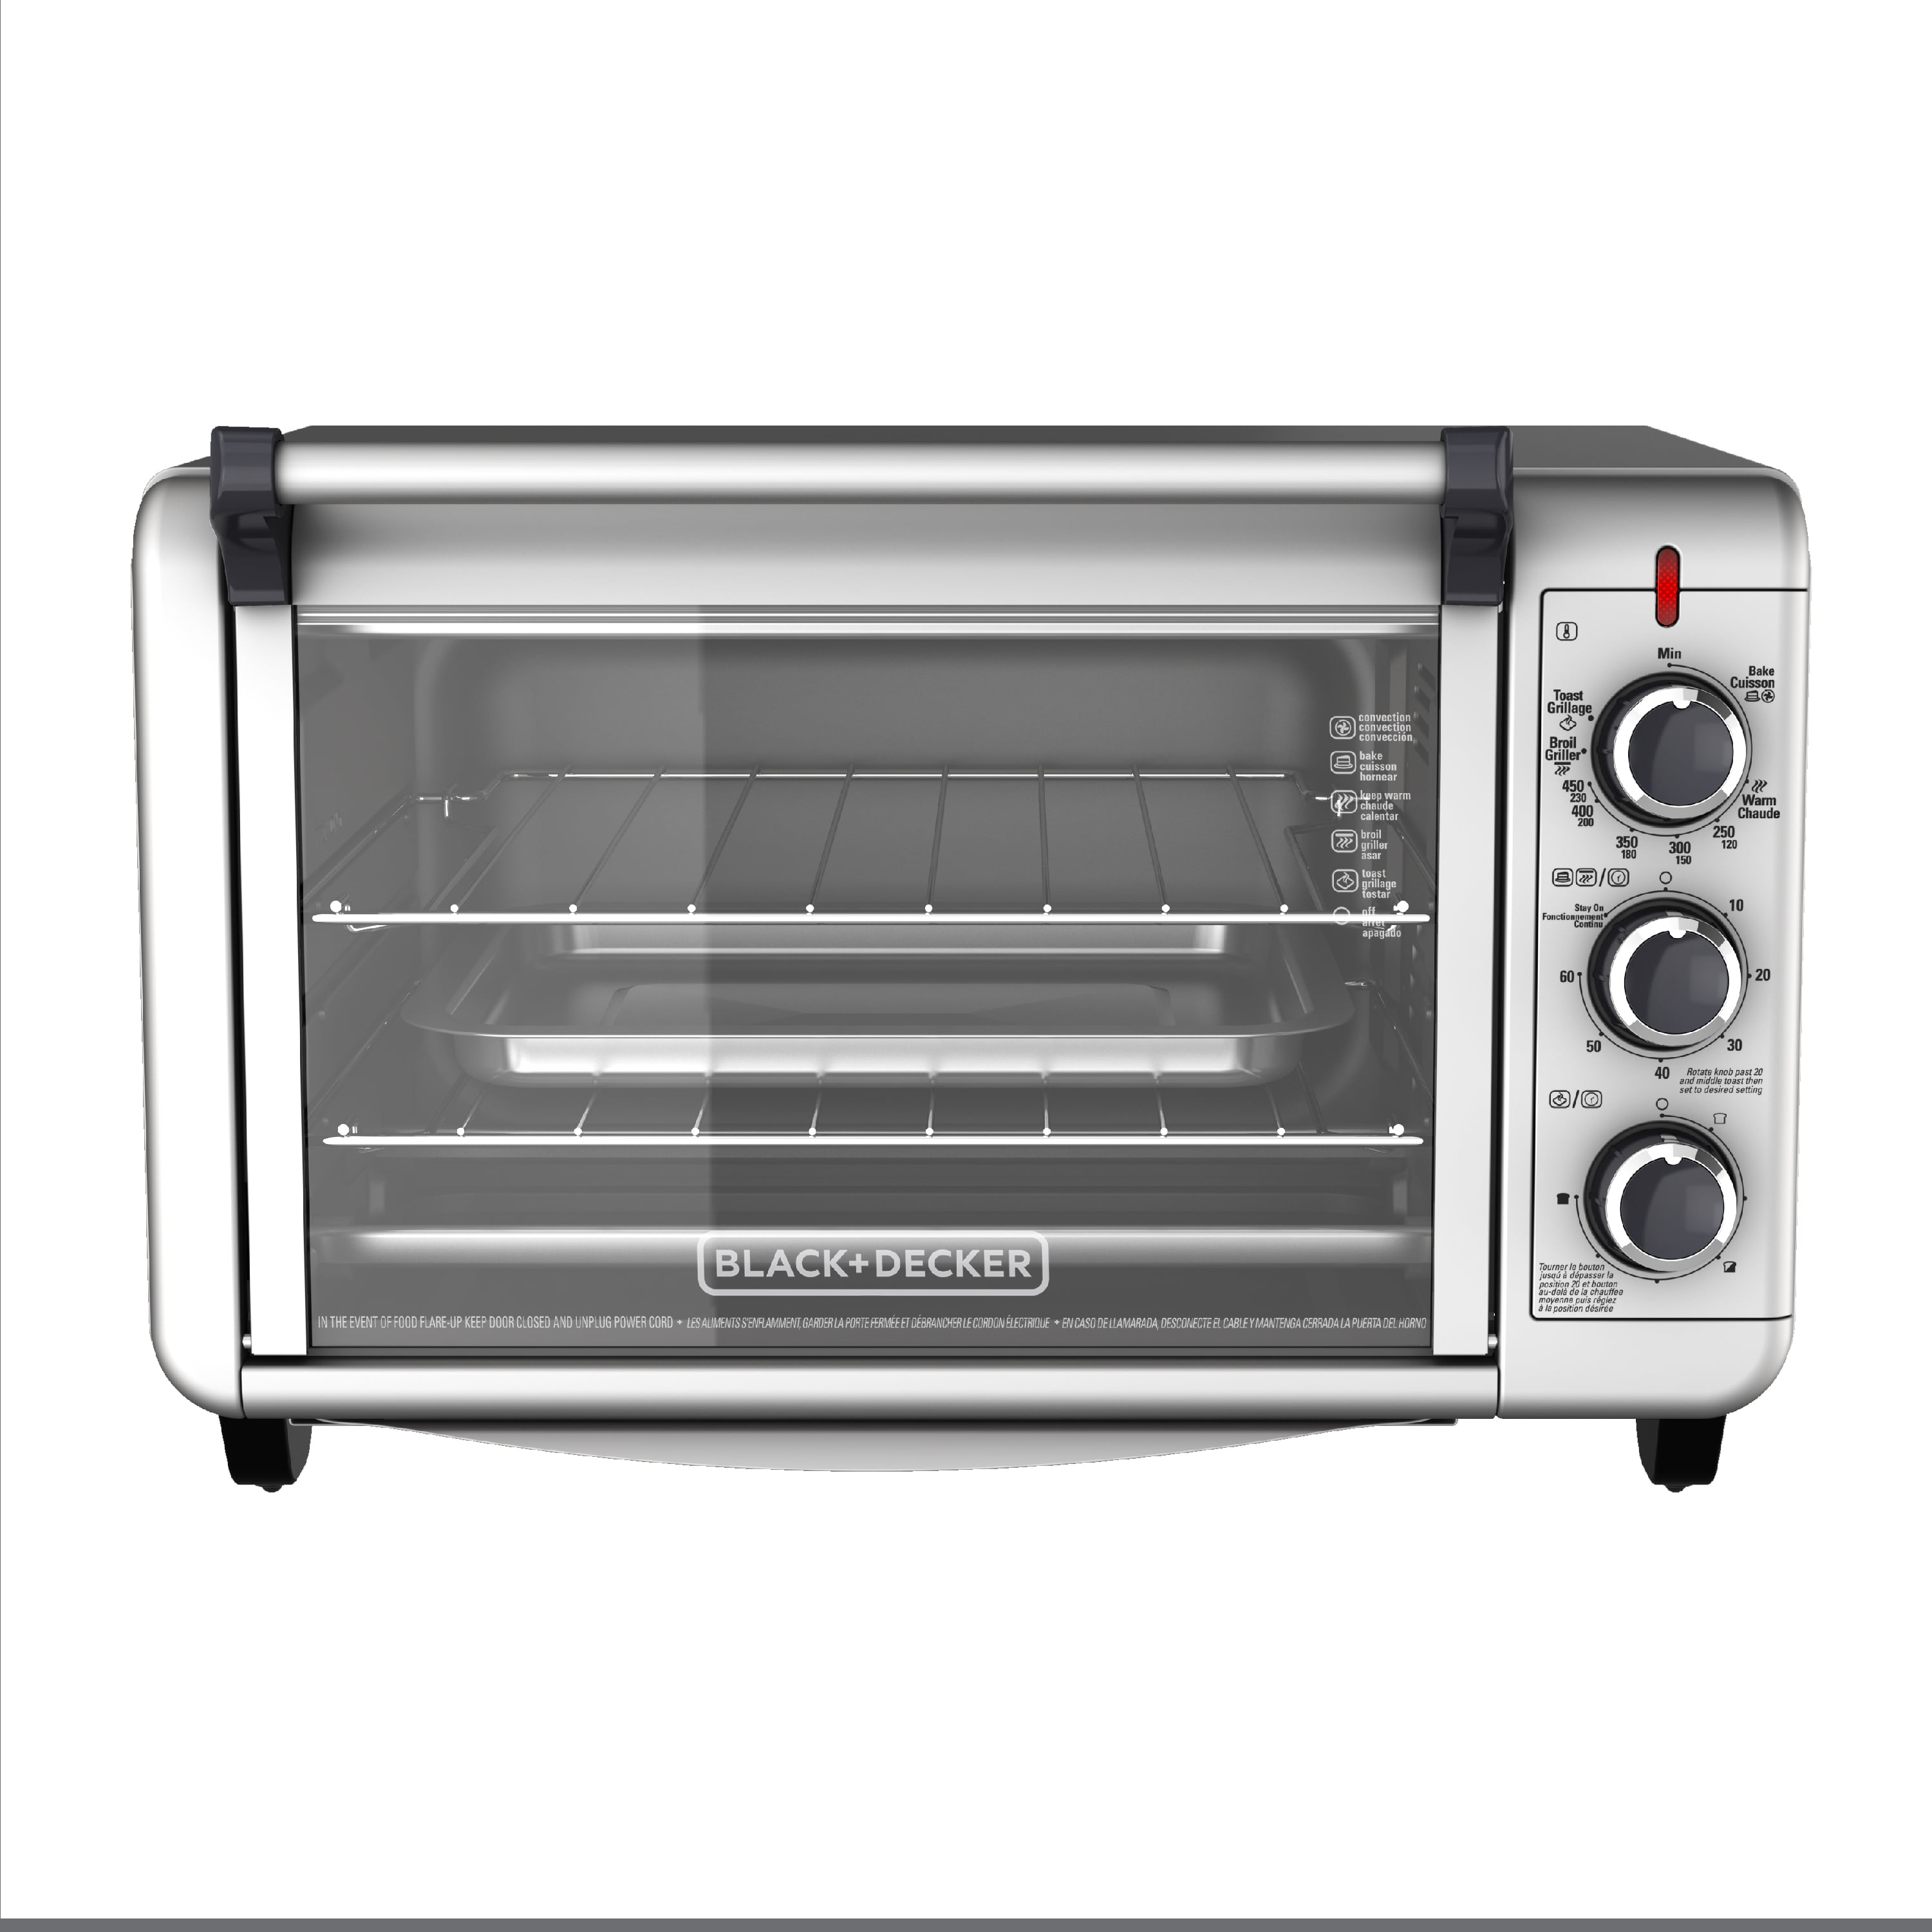 BLACK+DECKER Convection Countertop Oven, Stainless Steel, TO3000G -  Walmart.com